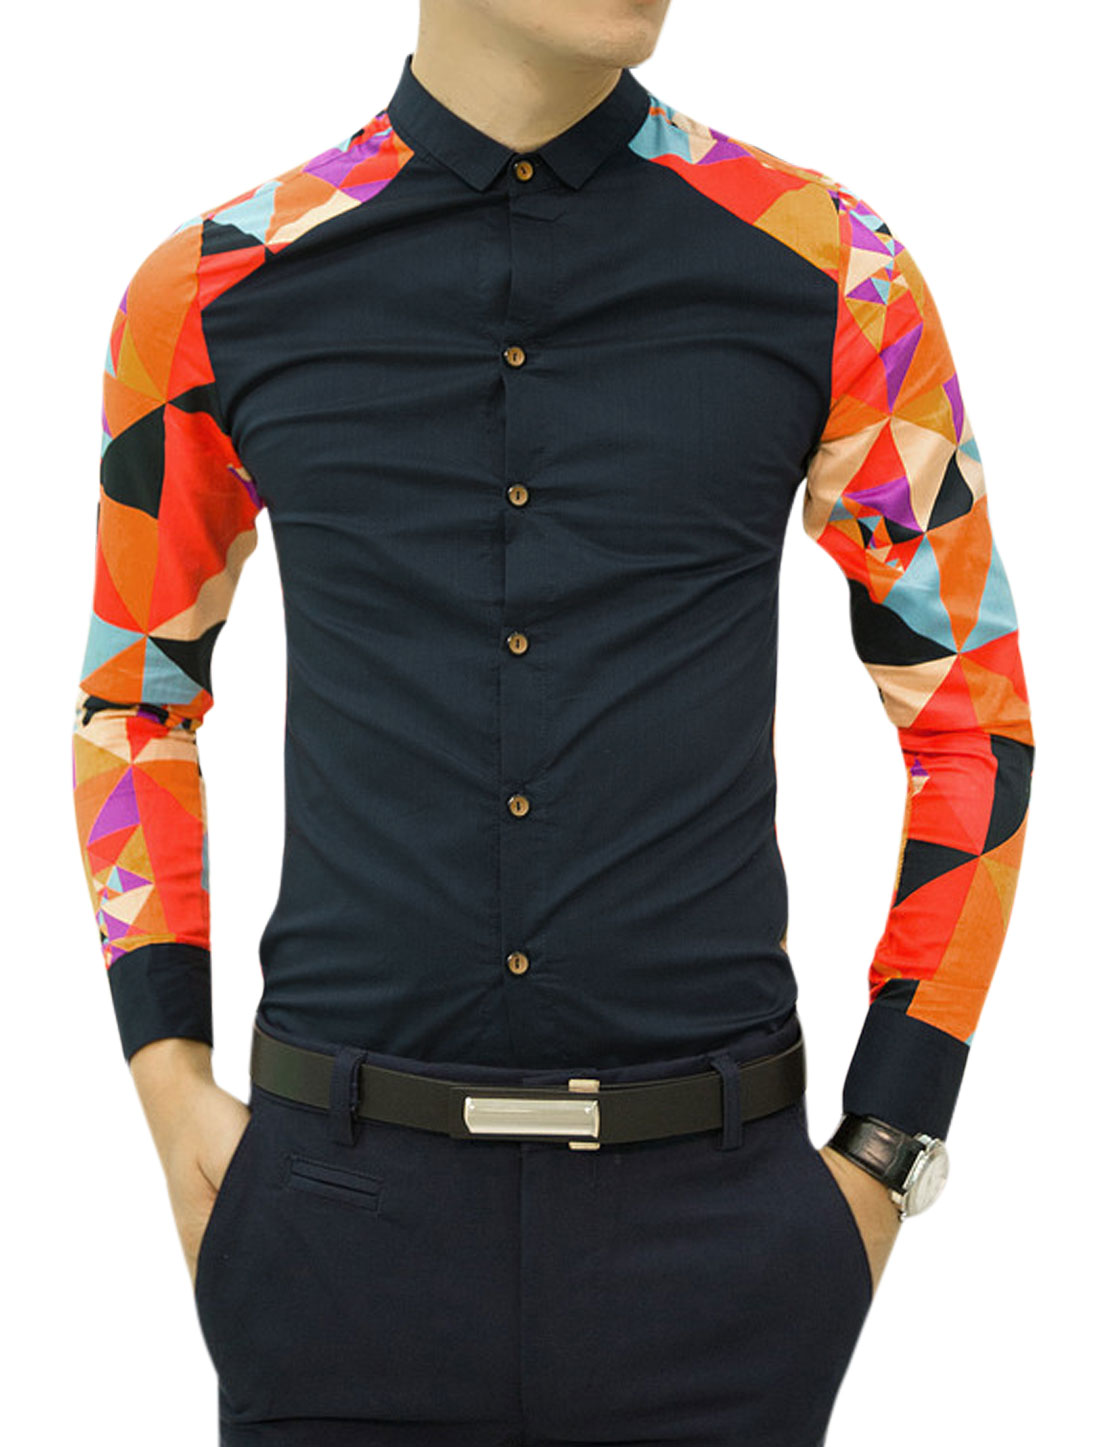 Men Geometrical Pattern Contrast Button Closure Leisure Shirts Navy Blue Orange S